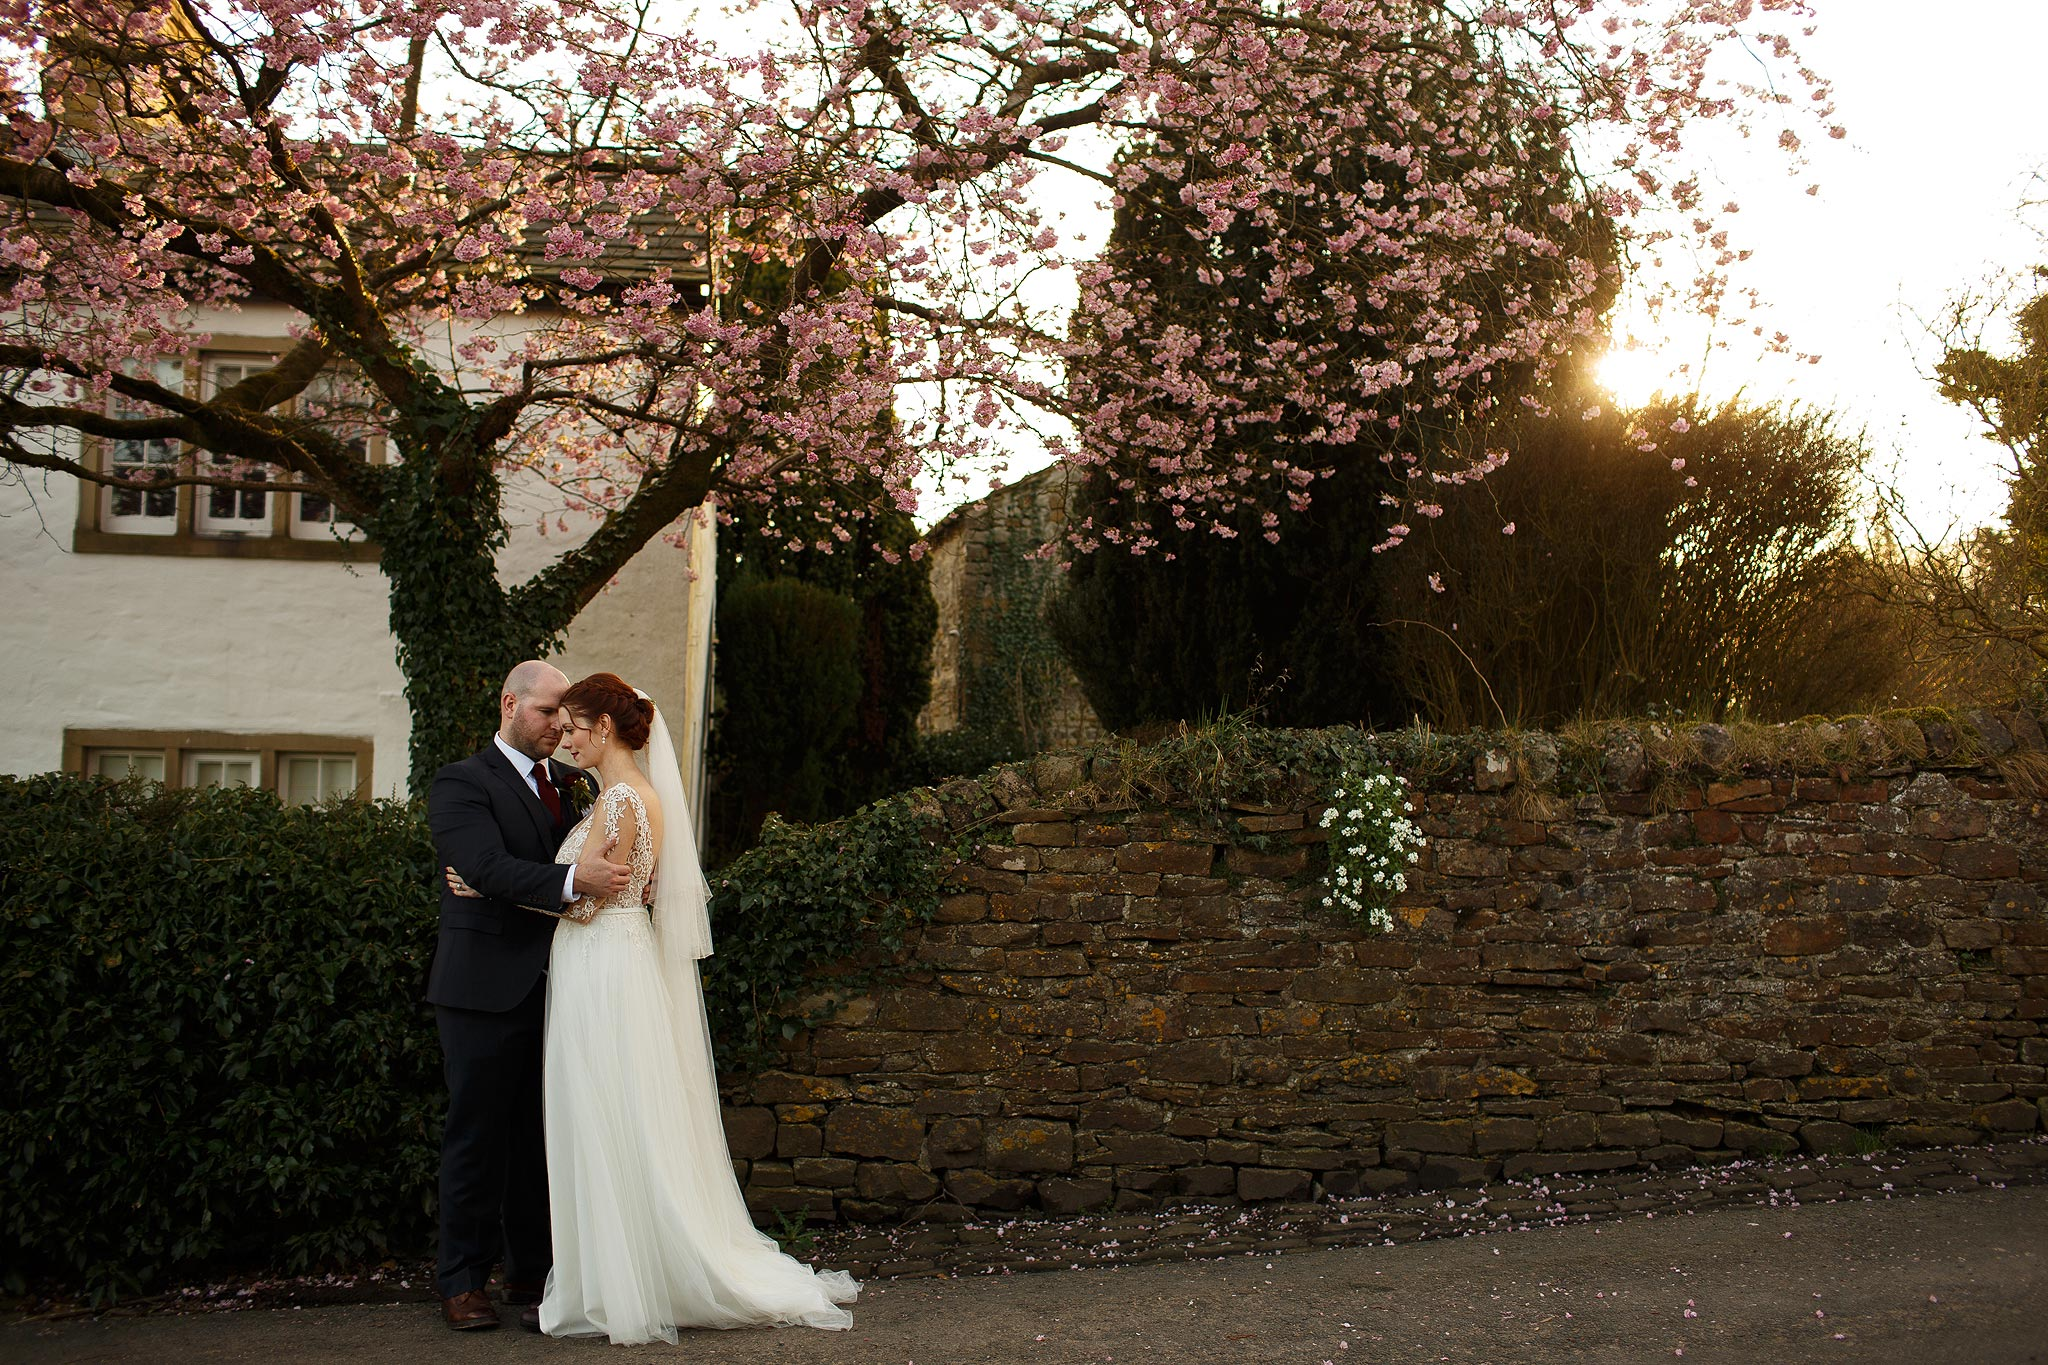 Bride and groom stood under the blossom tree in Downham on their wedding day.